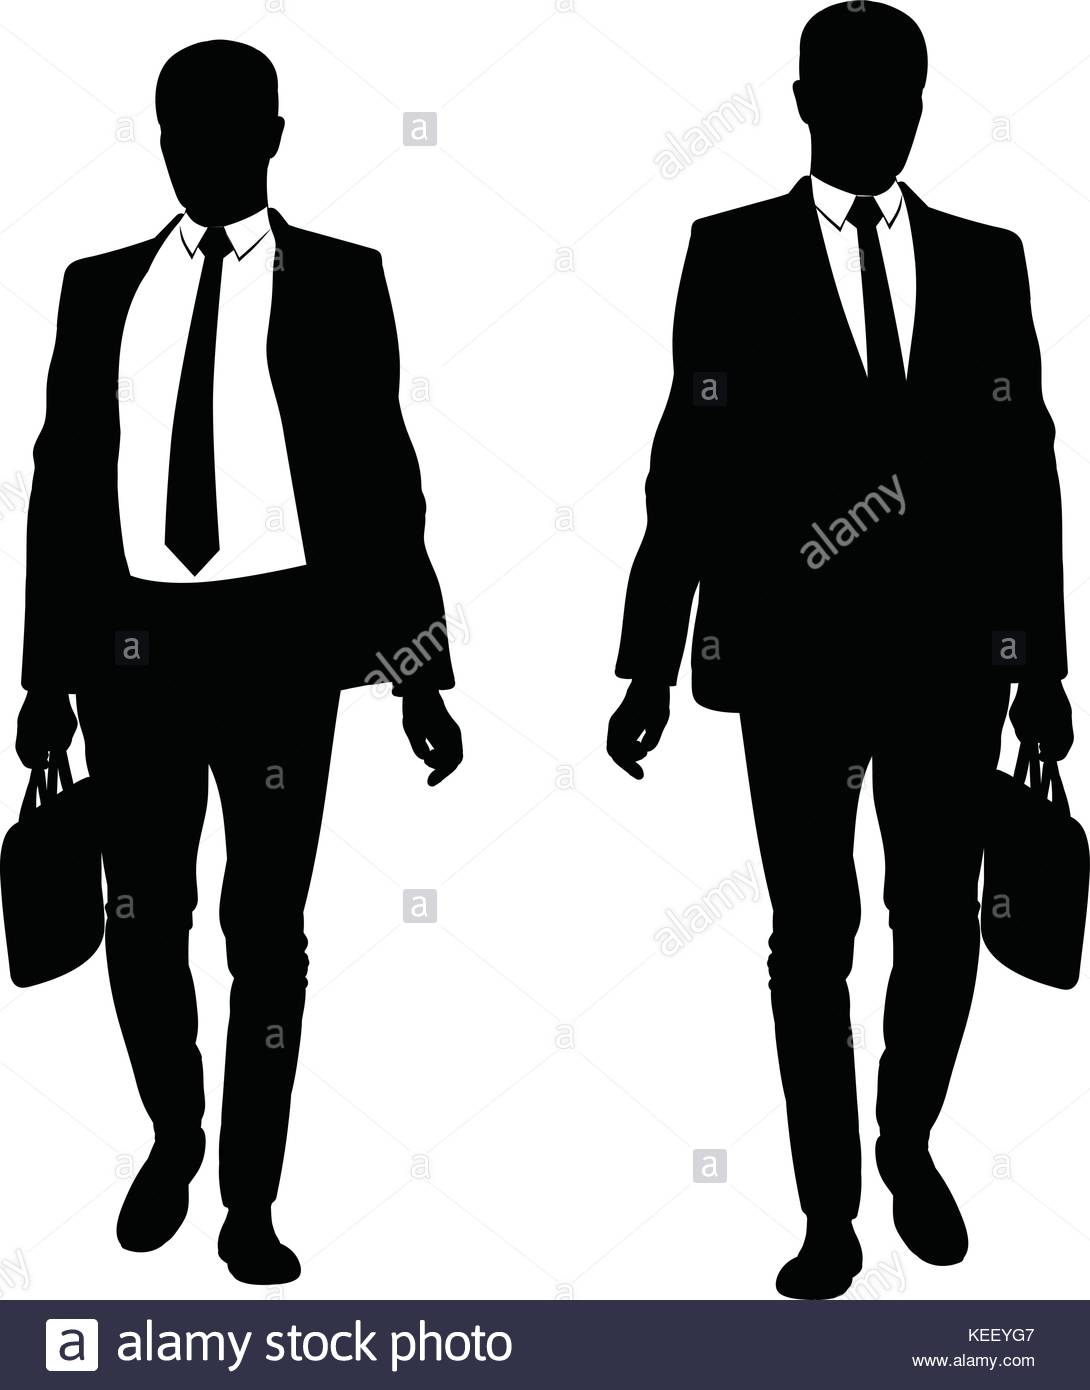 1090x1390 Silhouette Of A Walking Man In A Suit And Tie